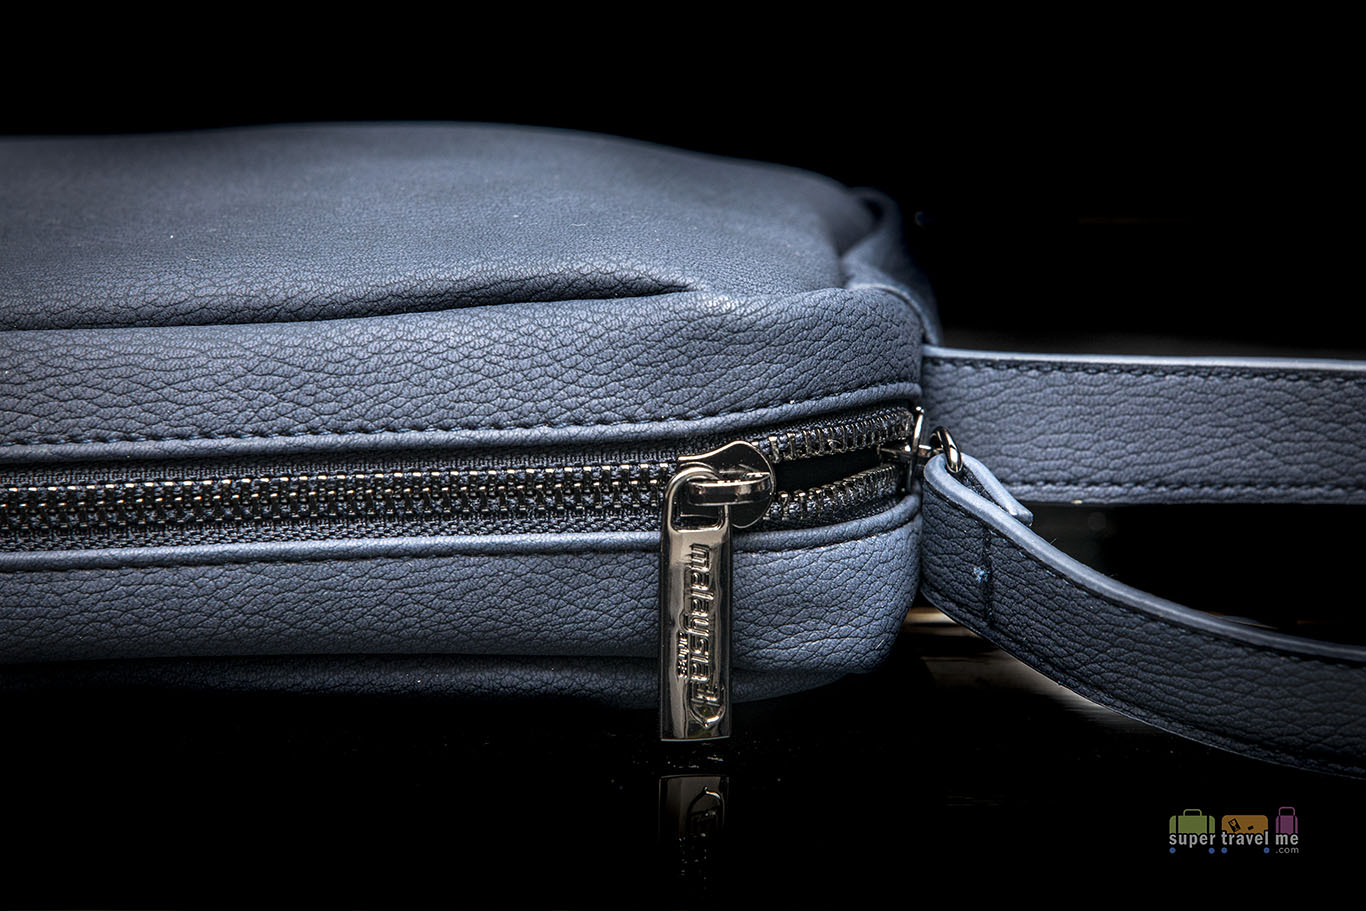 Malaysia Airlines first class Amenity kit bag for men